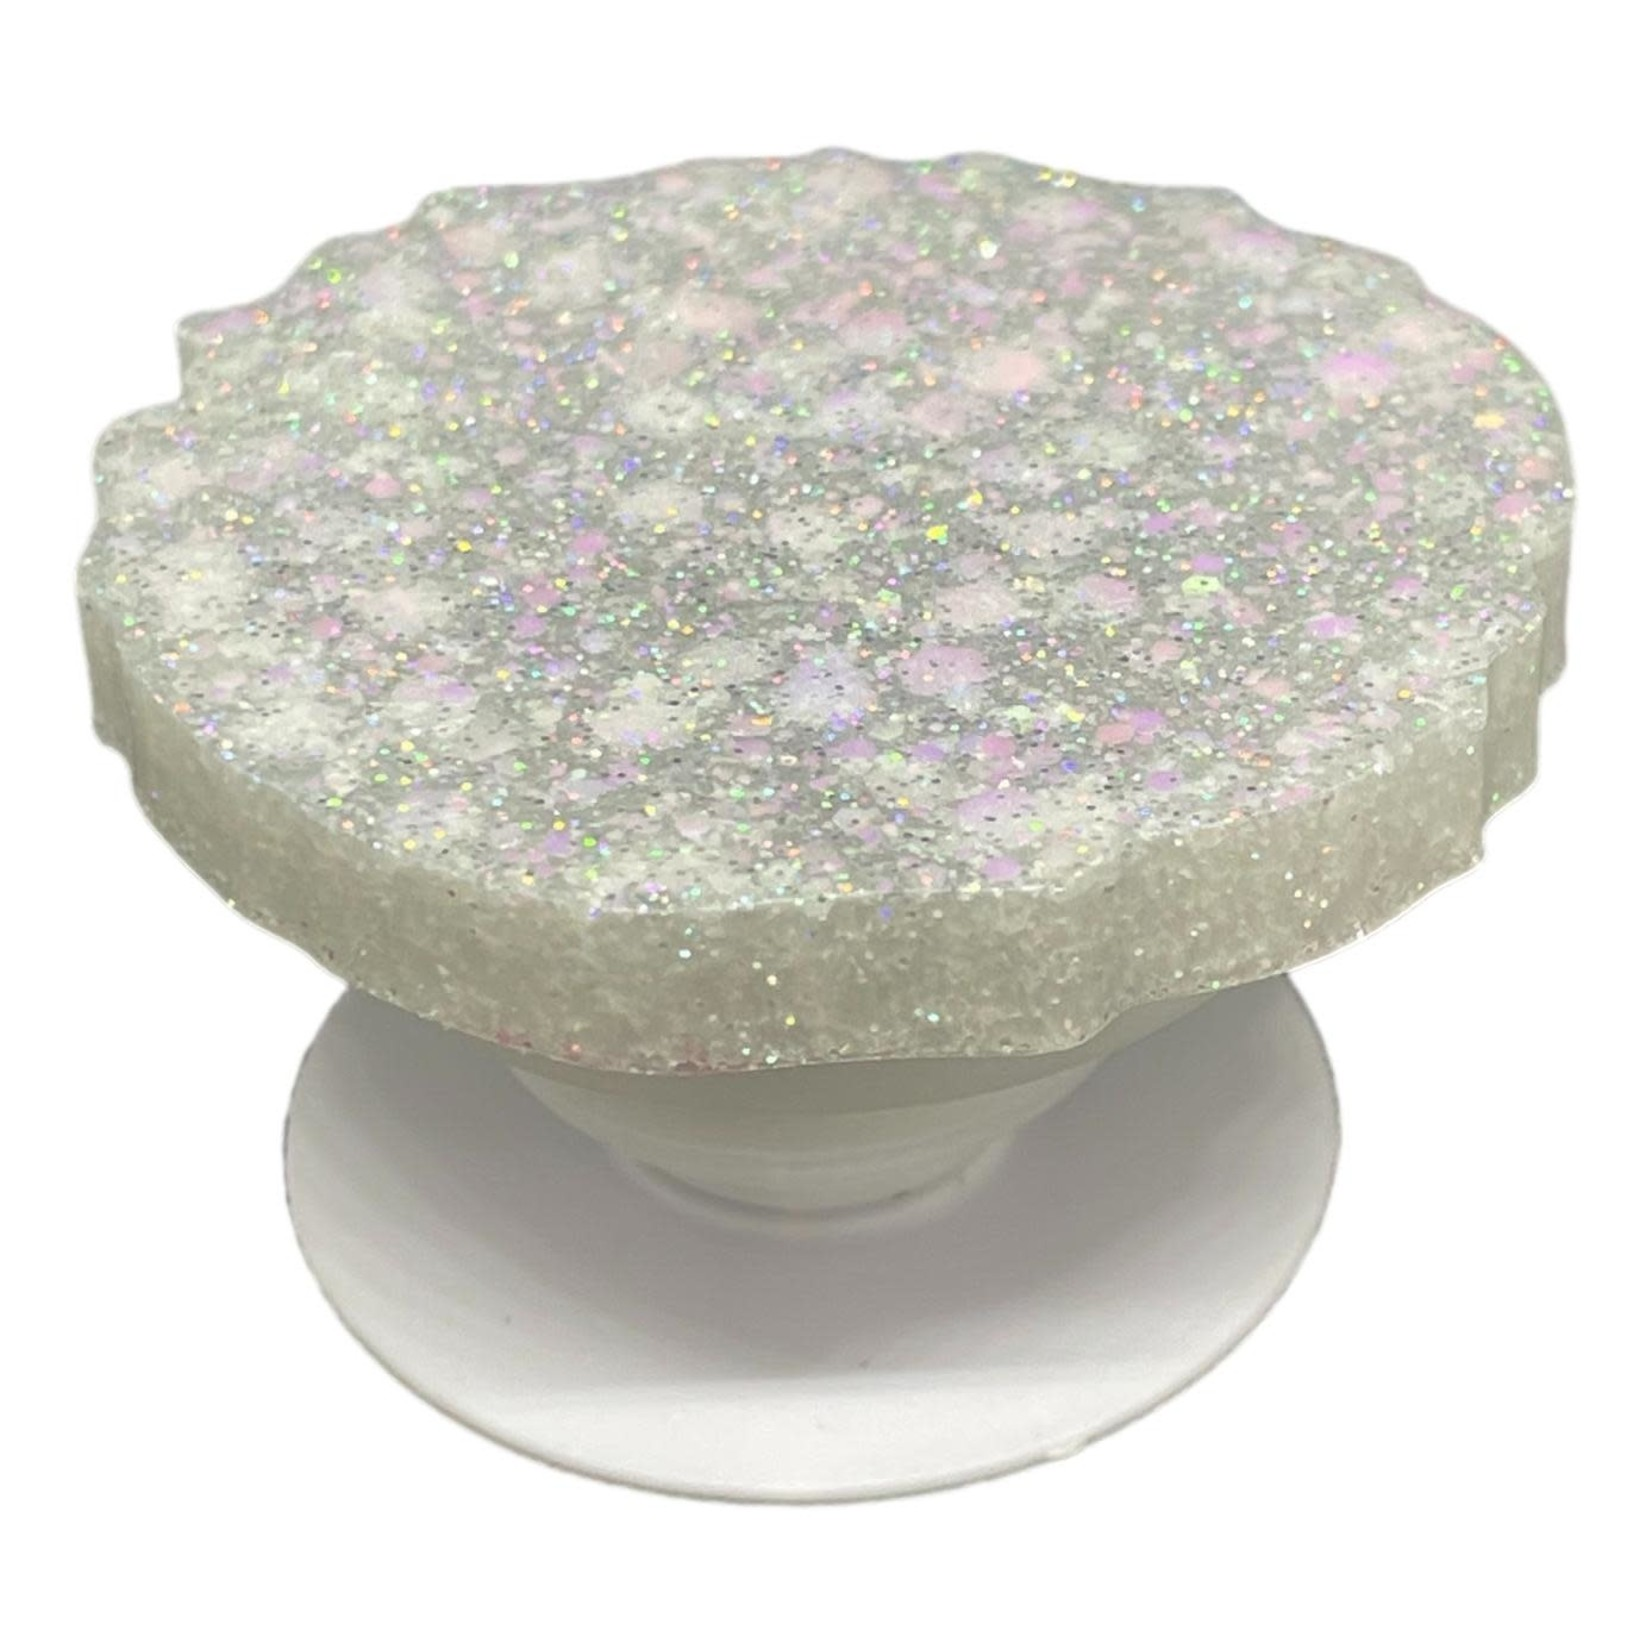 East Coast Sirens Sparkling White Geode-style Phone Grip